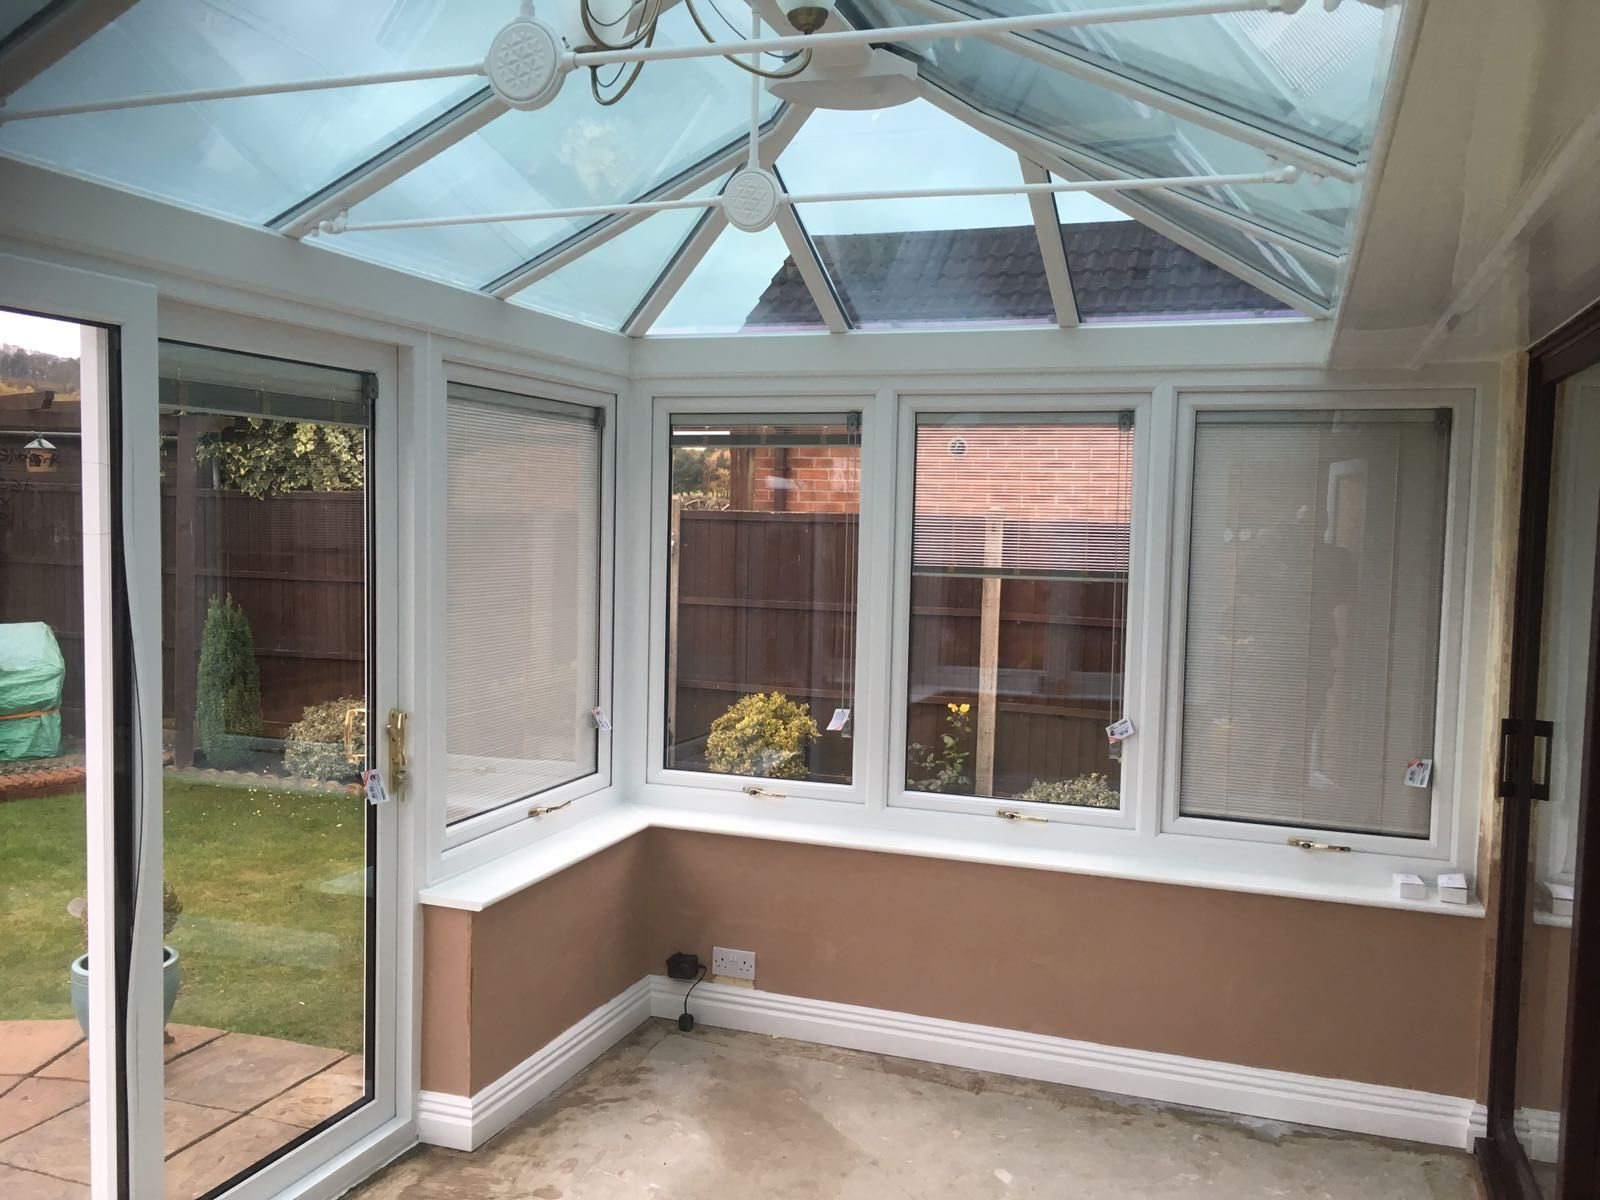 White Double Hipped Edwardian Conservatory With Celsius Elite Roof Glass And Integral Blinds Installed In Calverton Notti Roofing Roof Lantern Window Company